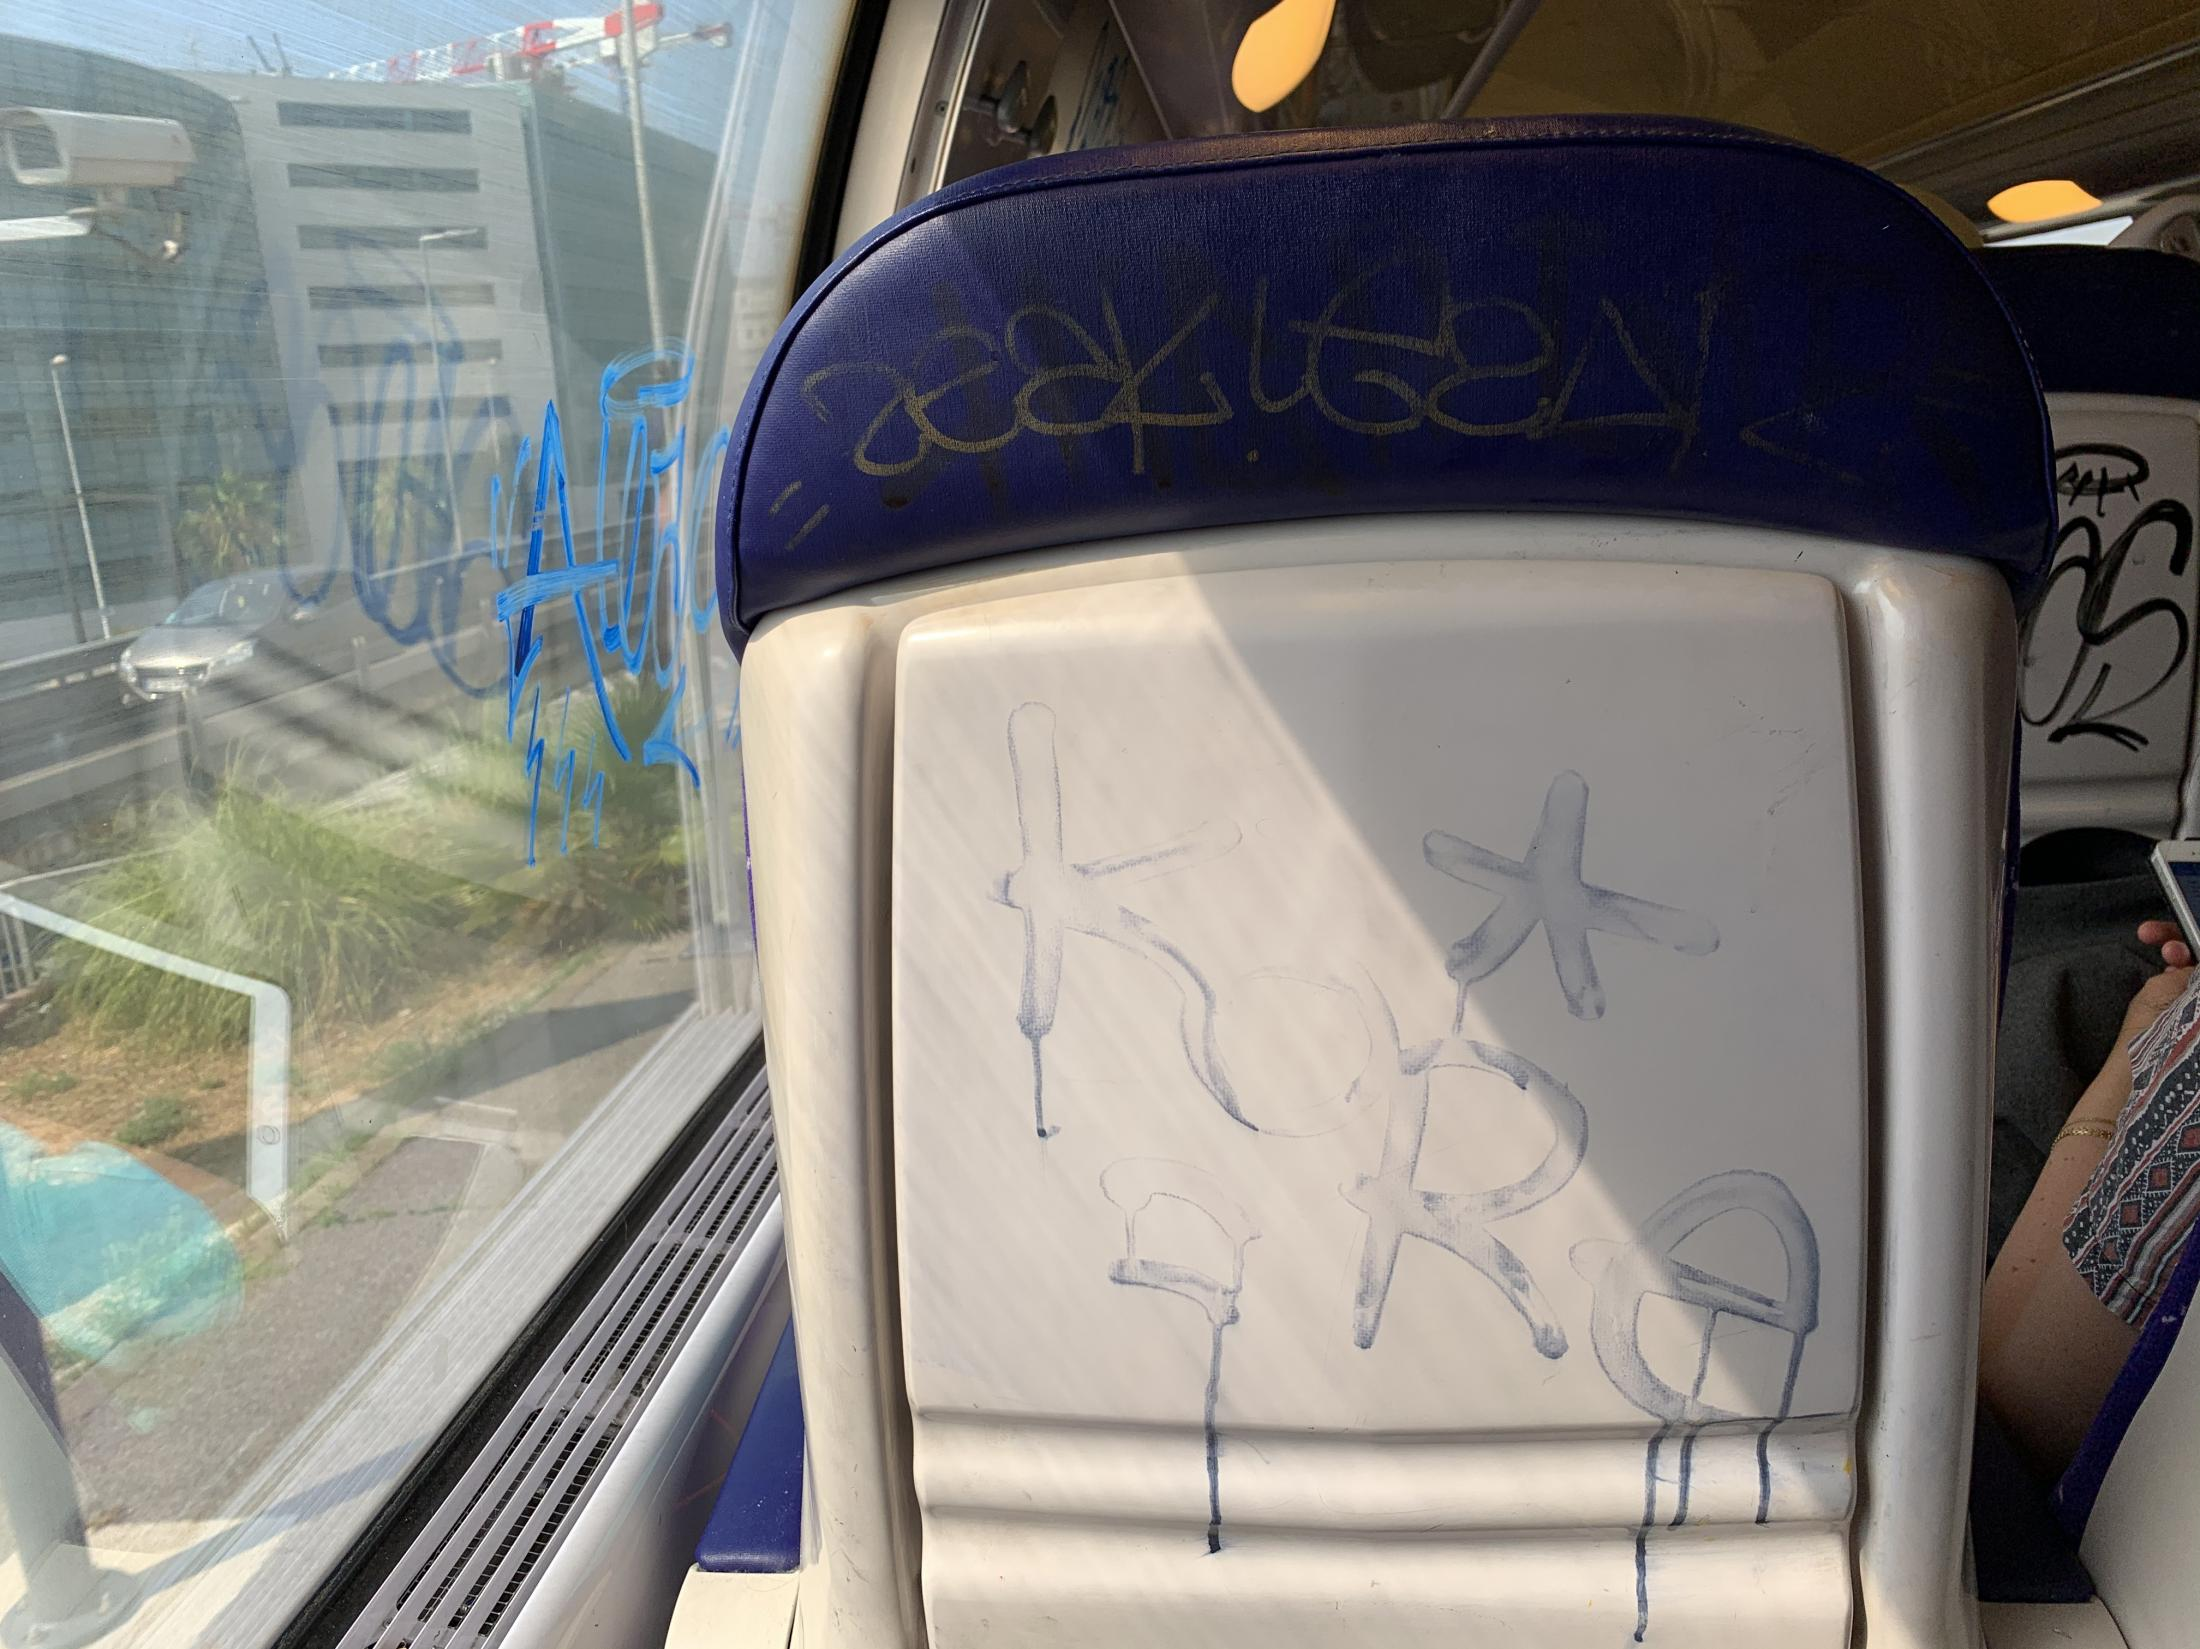 Nice, Provence-Alpes-Côte d'Azur, France. 2019. Graffiti inside a regional train in the south of France. After arriving from Norway, I was on my way to Toulon to meet up with my parents and grandfather for lunch.